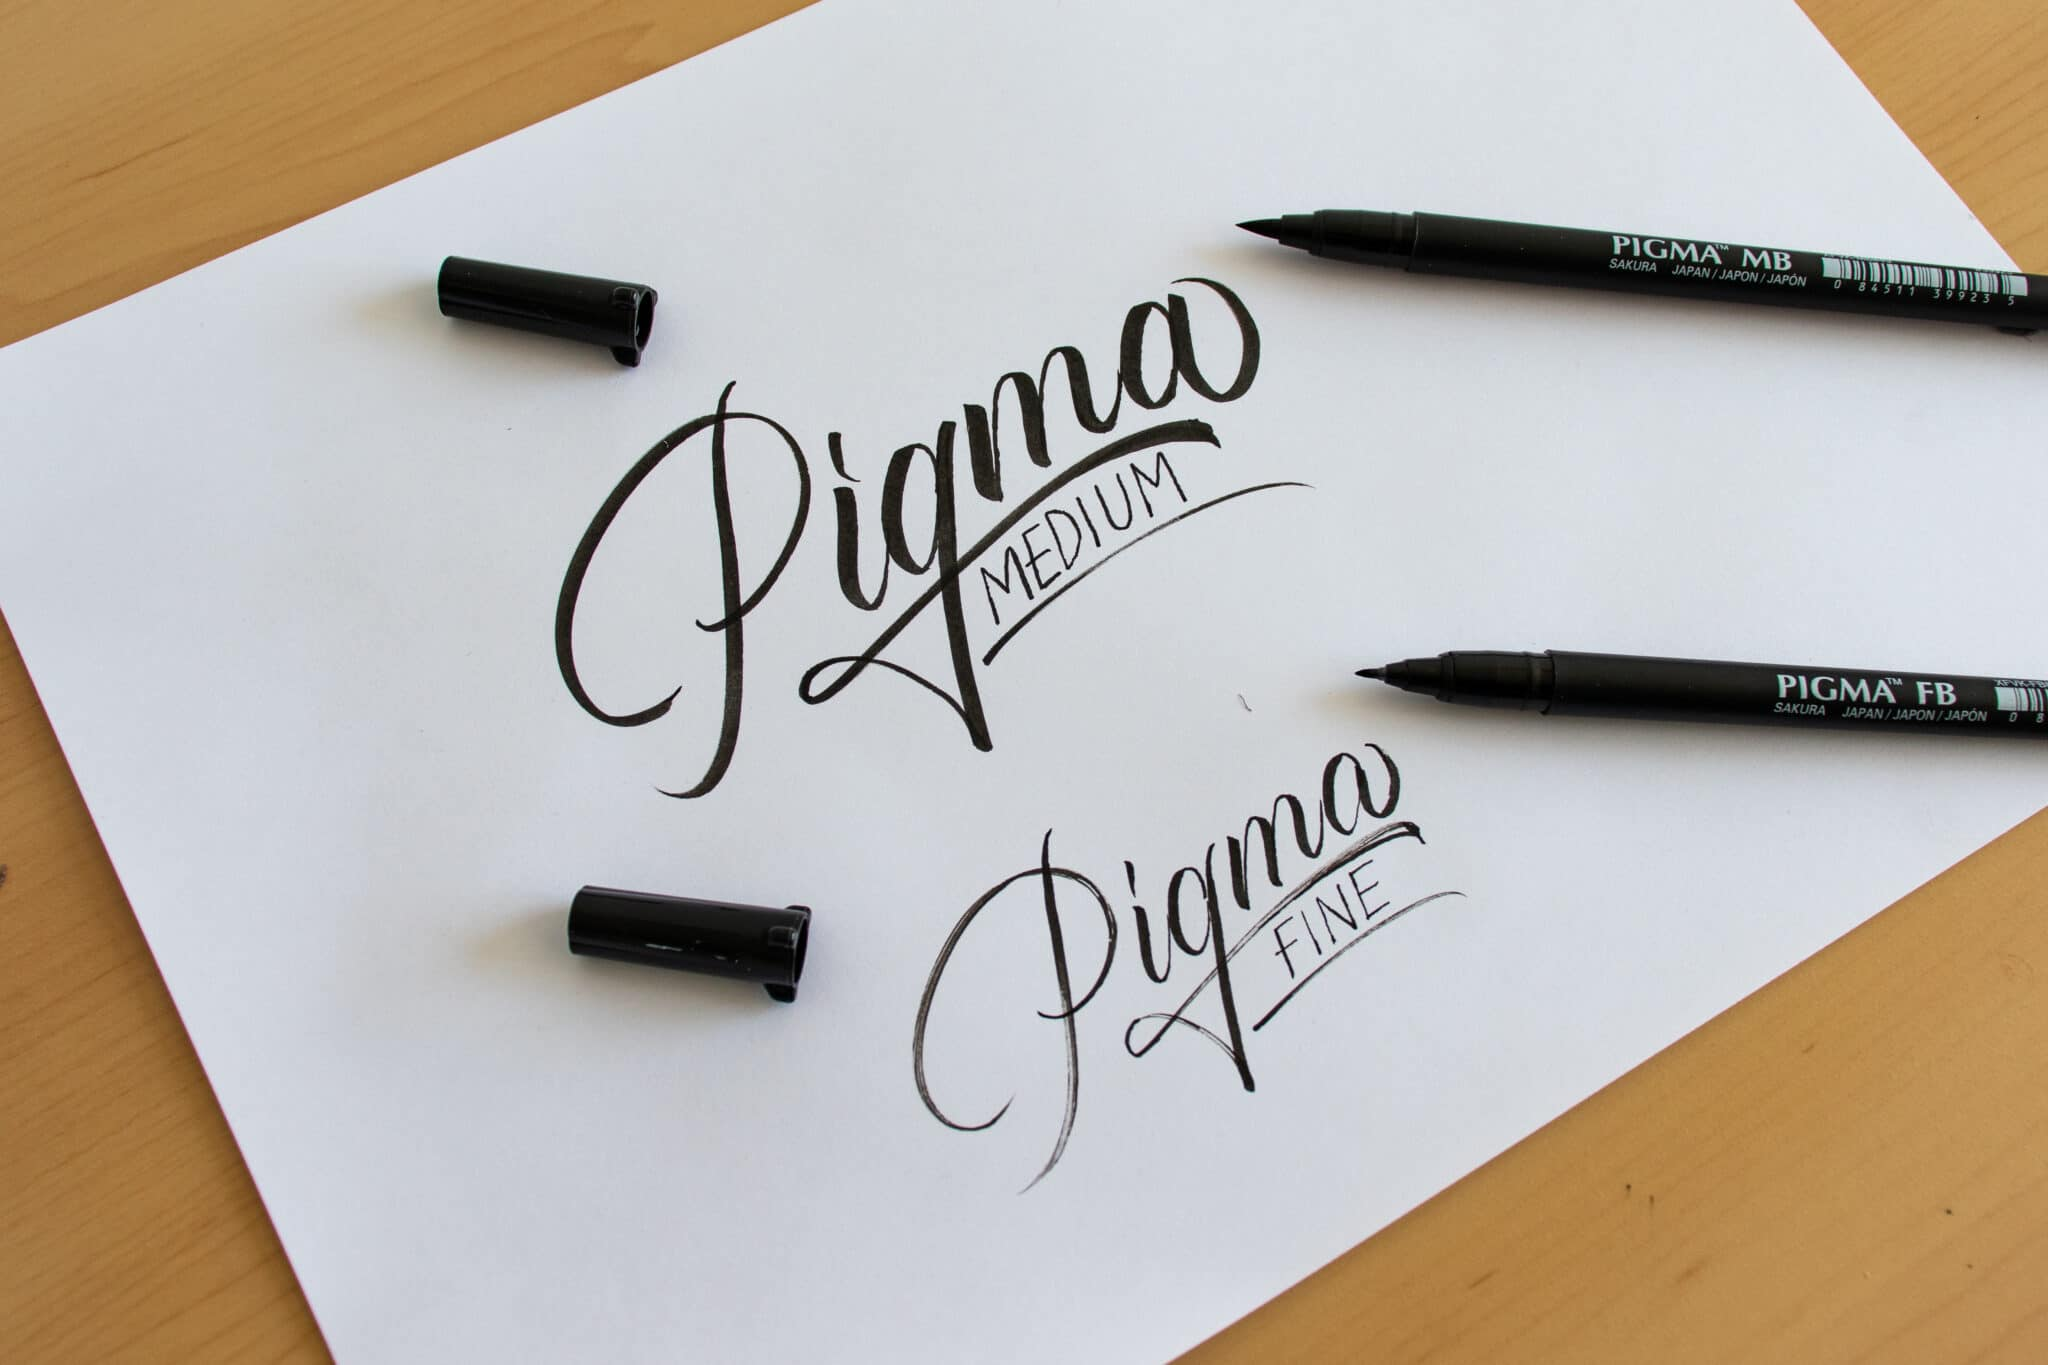 Pigma Sakura Professional brush pen - sample calligraphy